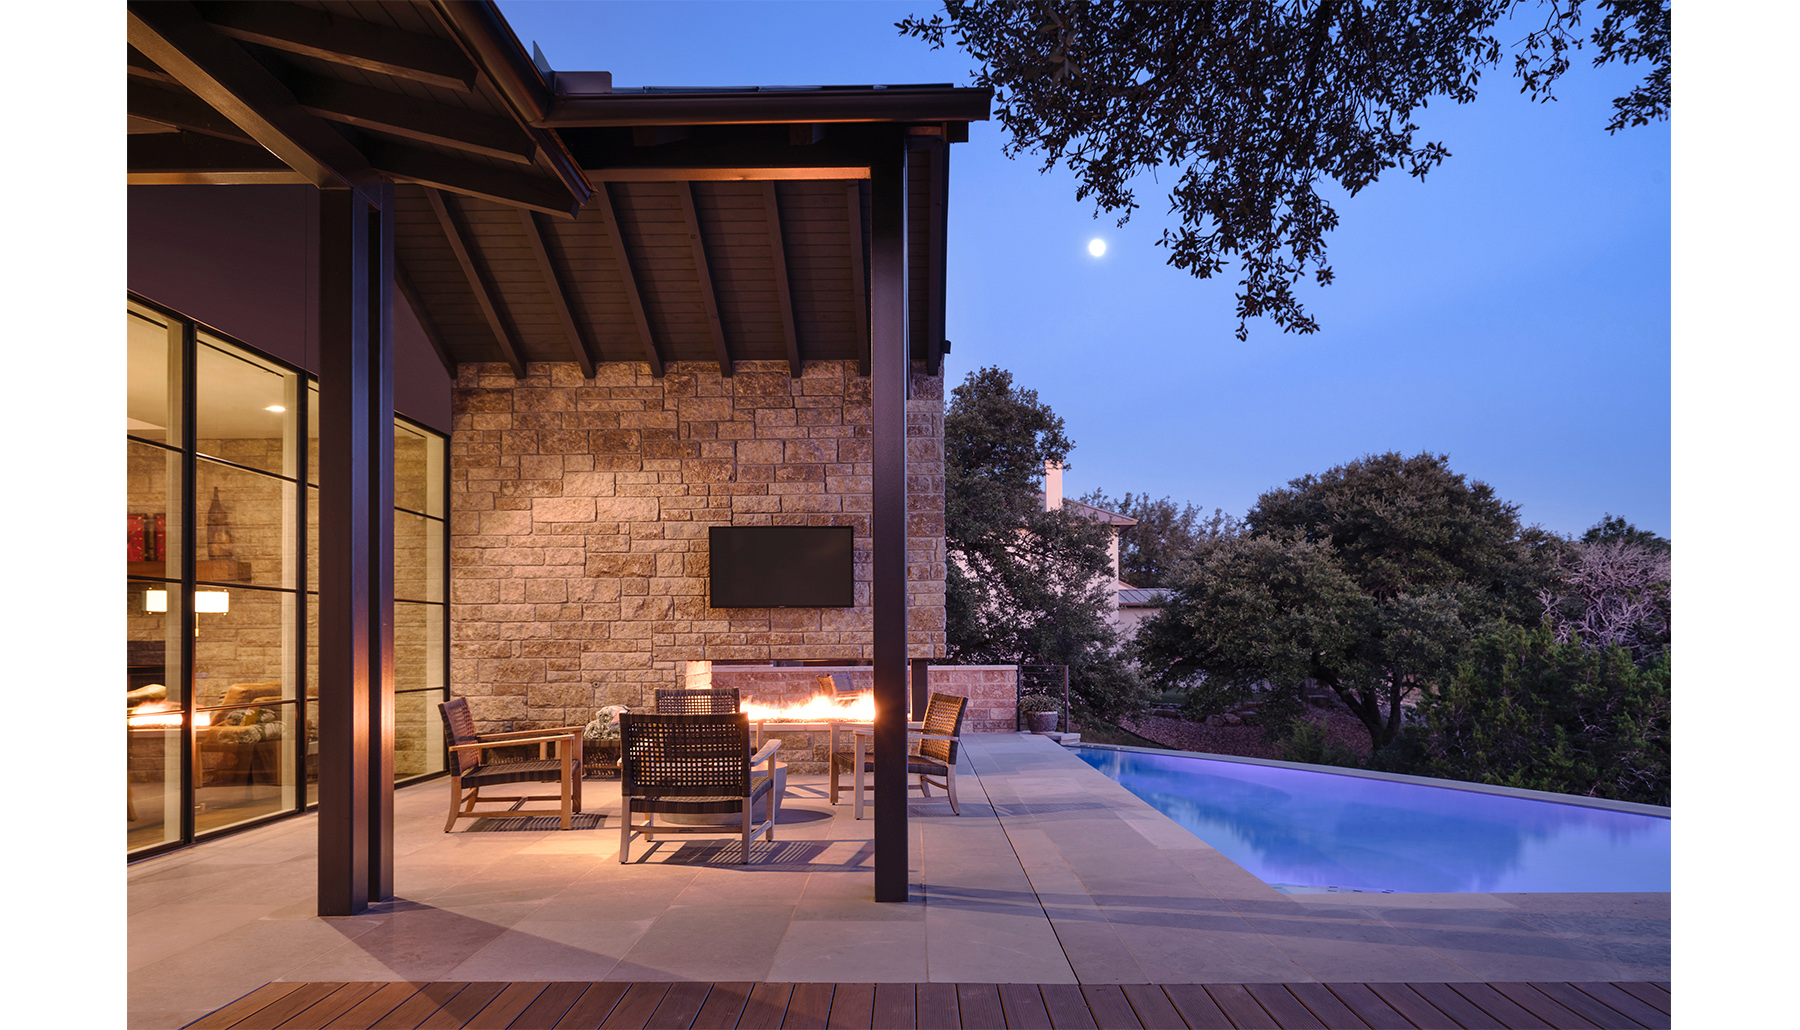 Spicewood Outdoor Living